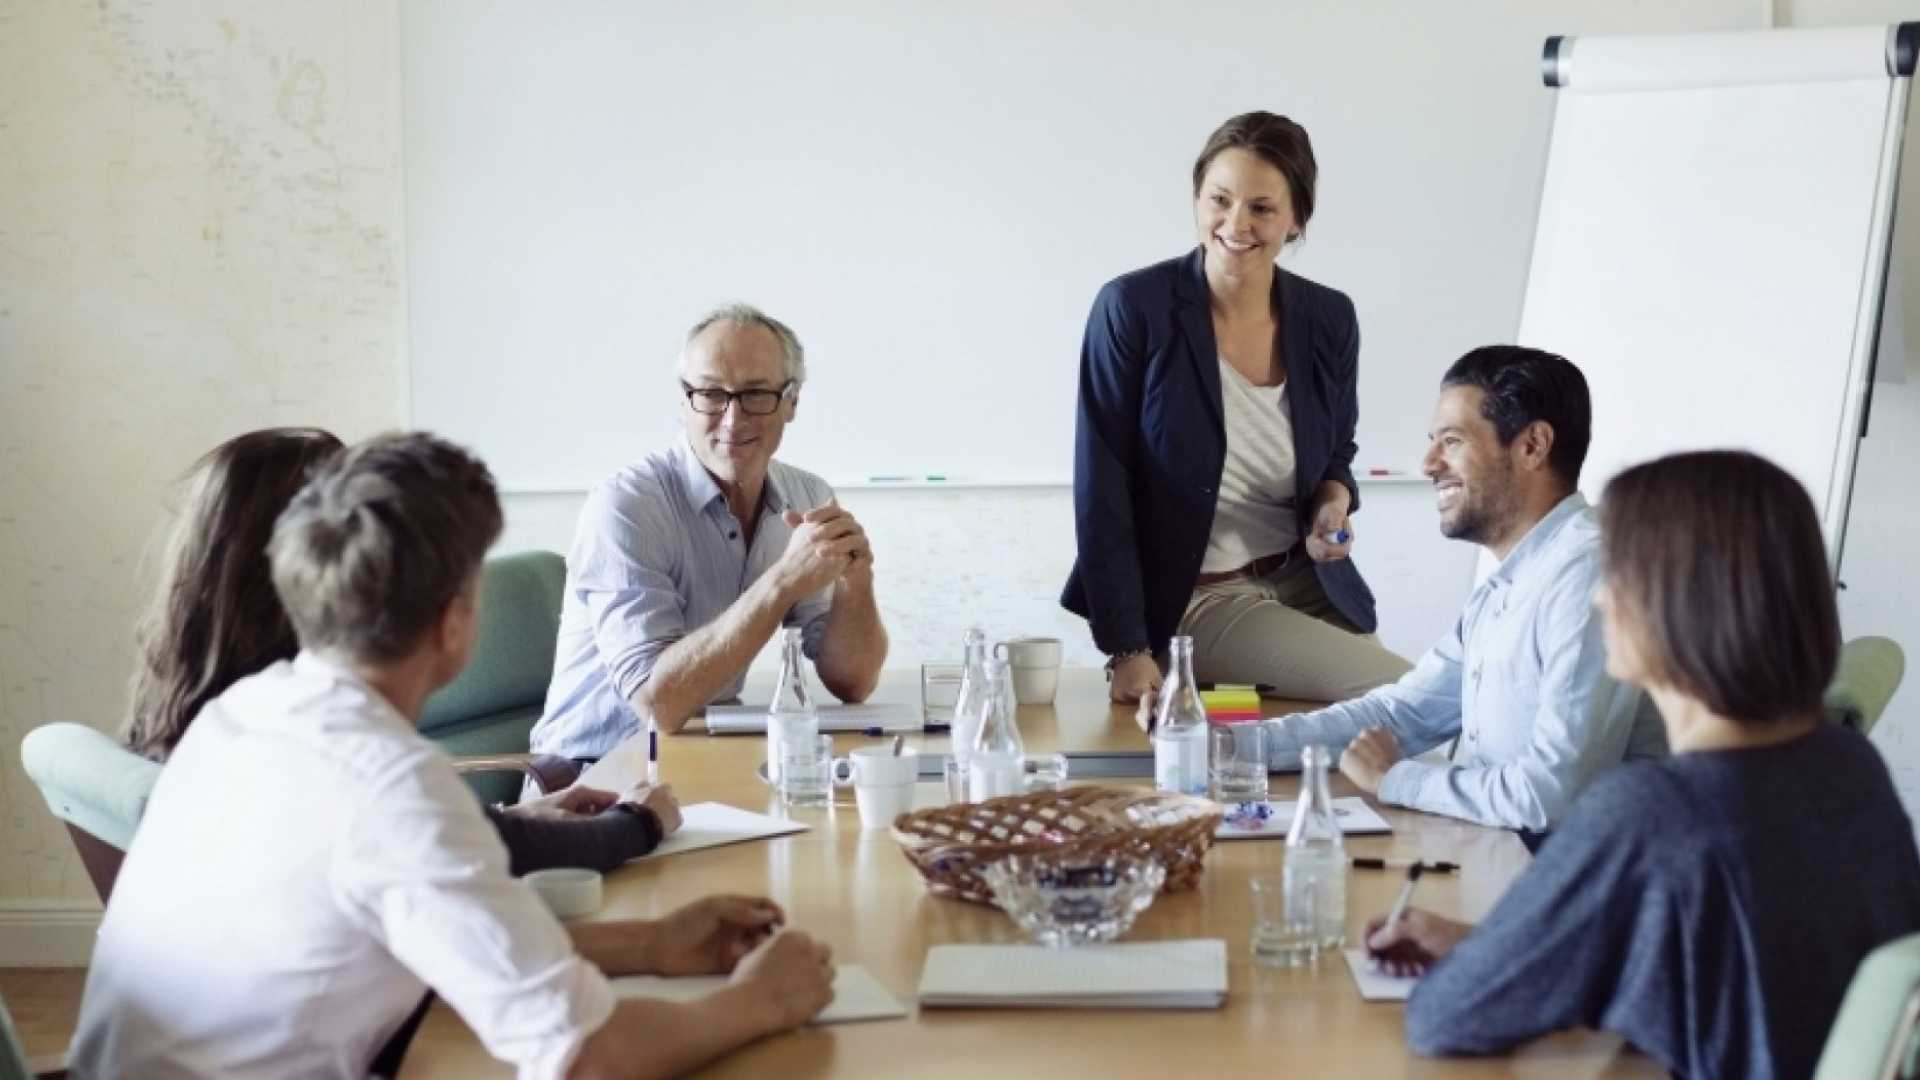 A 5-Step Guide For More Productive Meetings